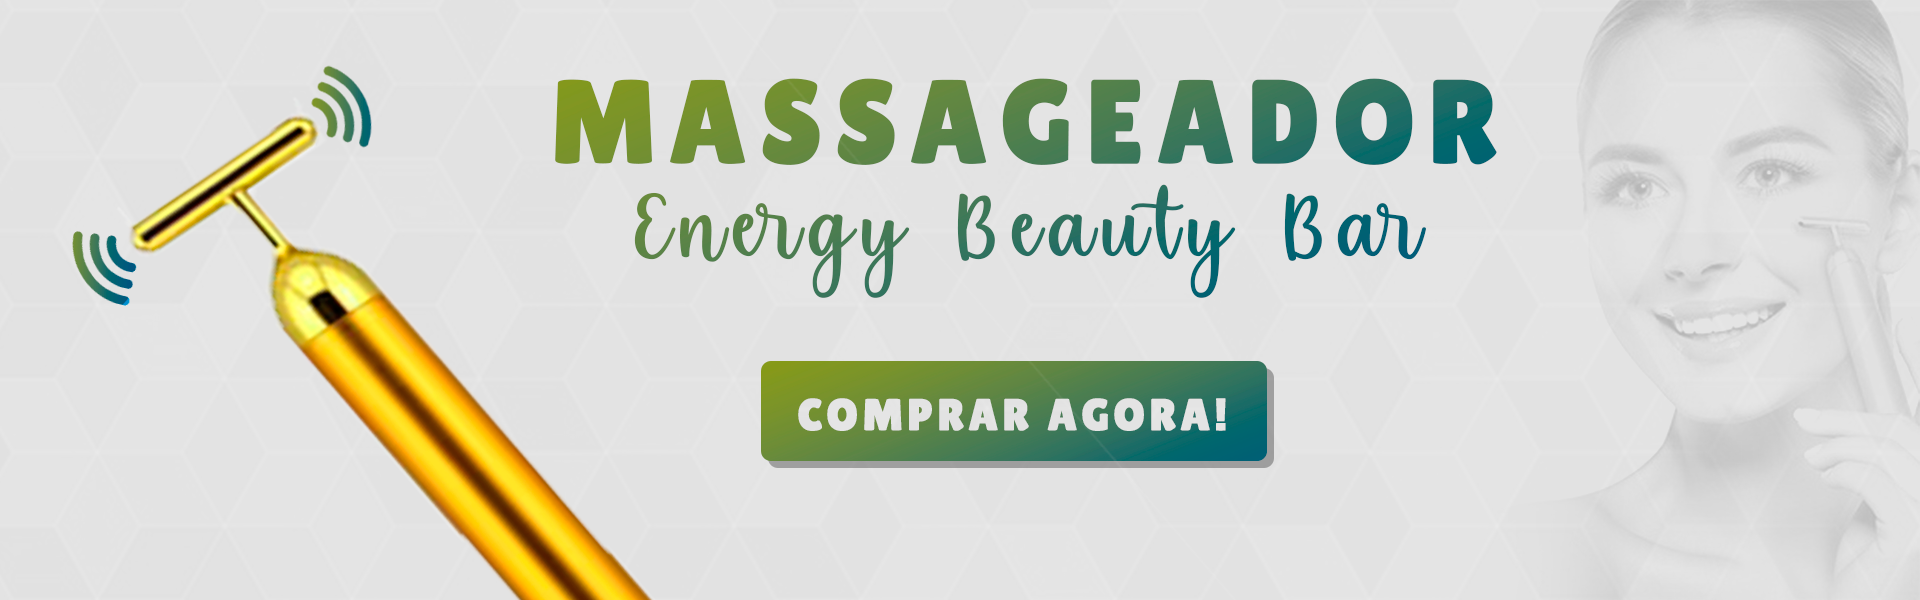 MASSAGEADOR ENERGY BEAUTY BAR